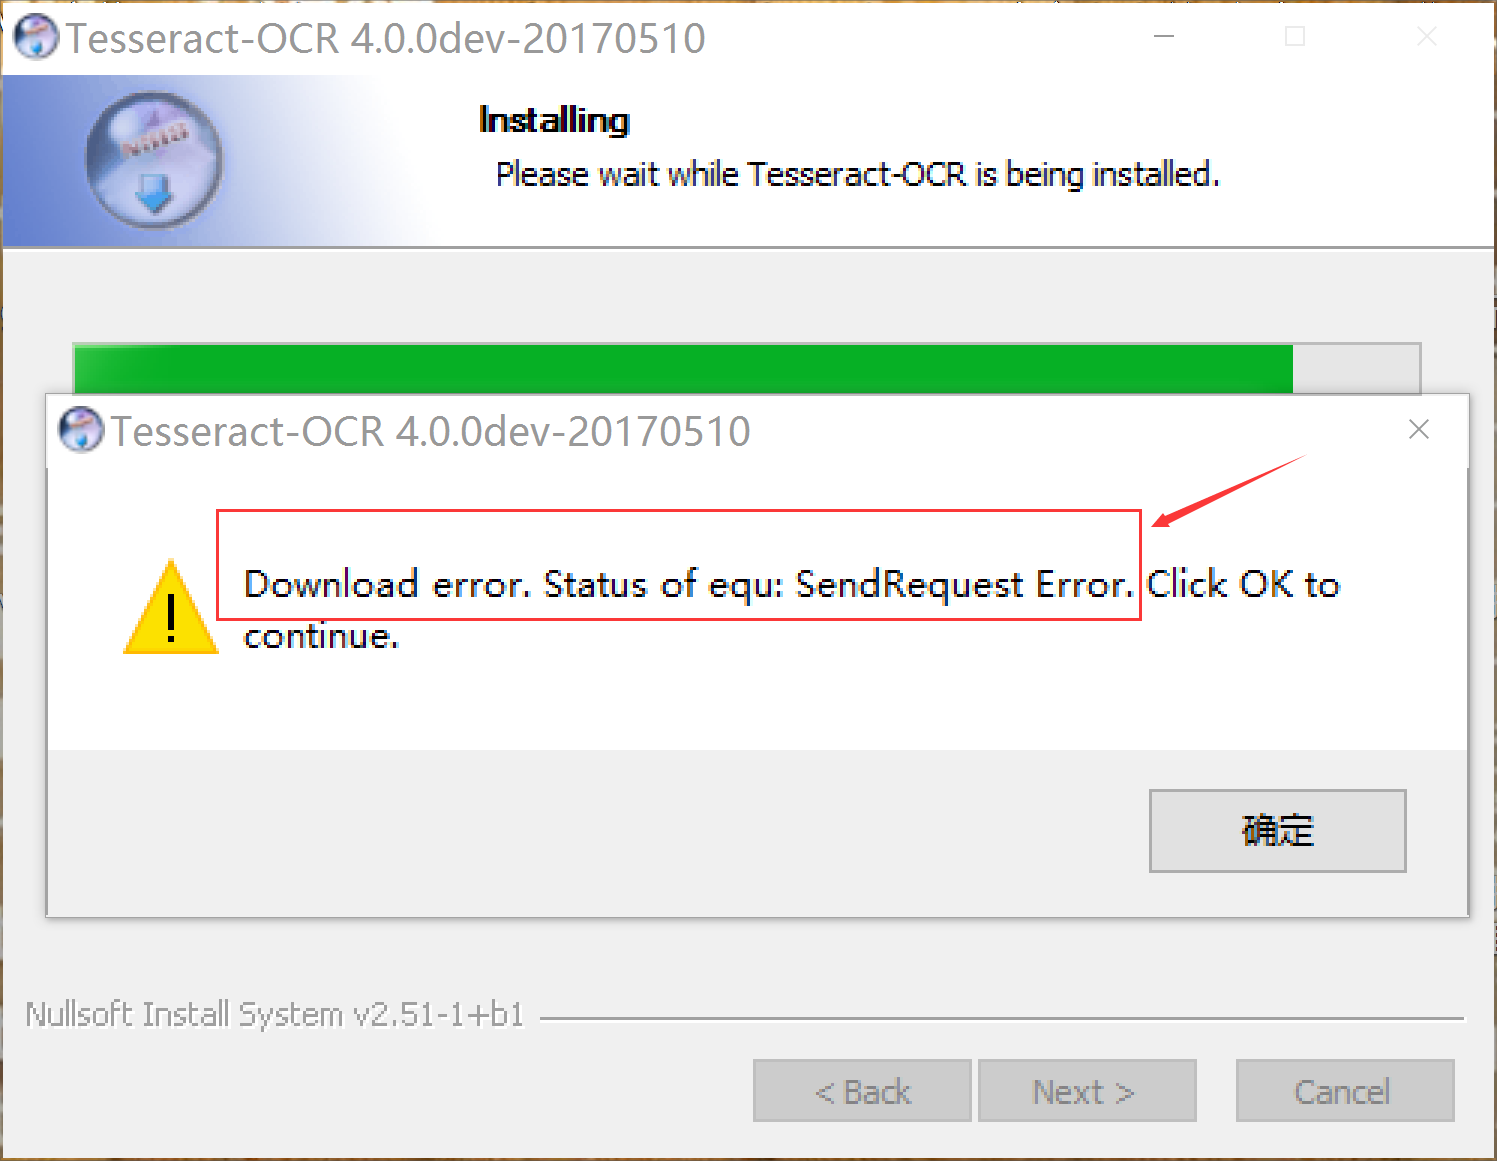 tesseract-ocr download error_百度知道